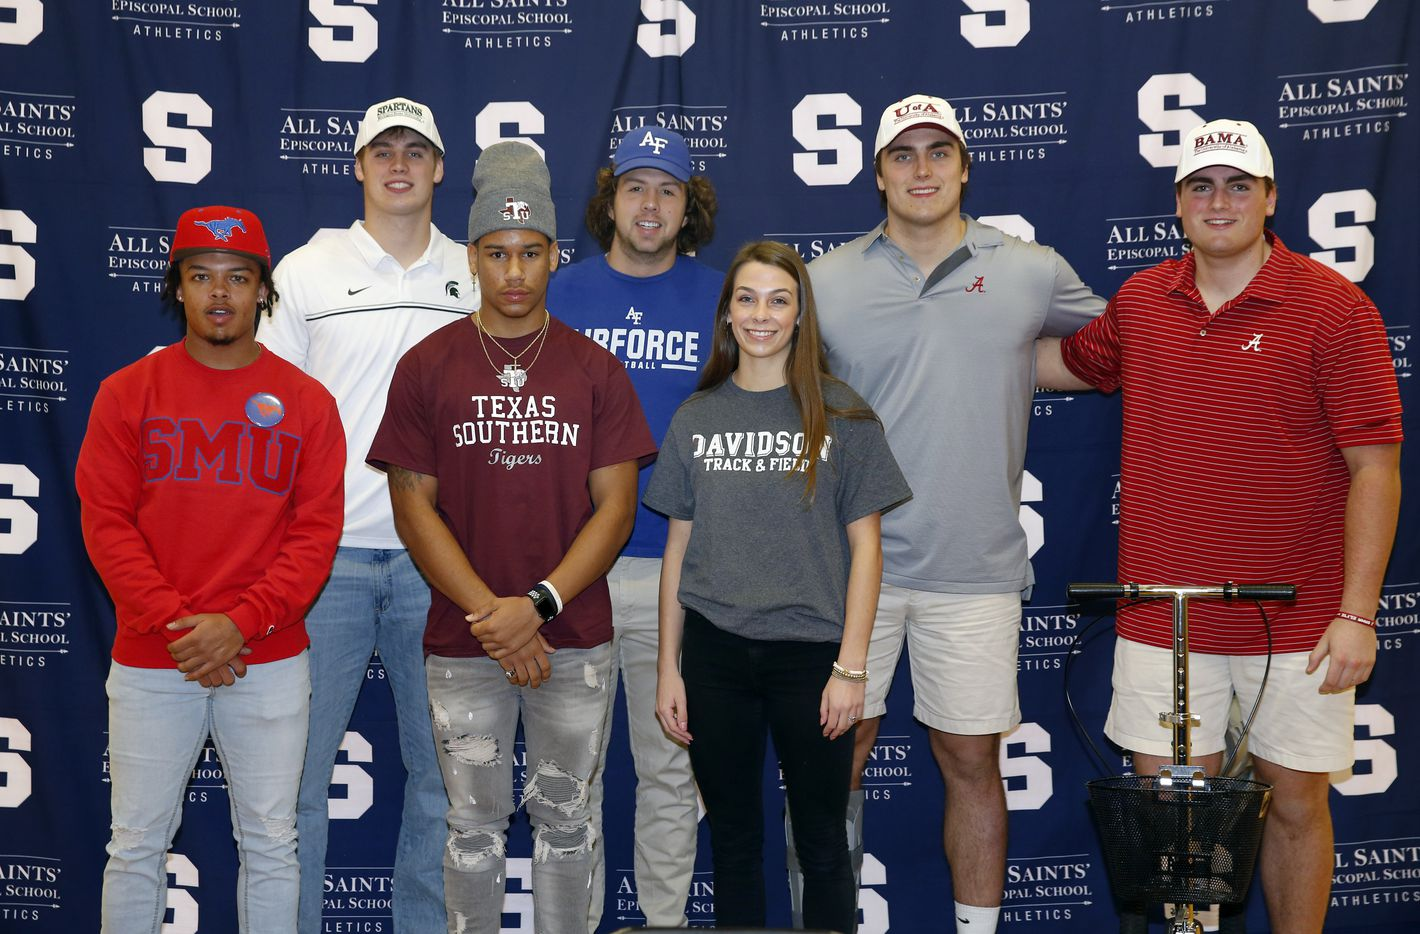 Fort Worth All Saints' Episcopal School athletes signed their national letters in the schools gymnasium, Wednesday, December 16, 2020. They are from left, Montaye Dawson (SMU), Hampton Fay (Michigan State), Nick Cole (Texas Southern), Paul Breedlove (Air Force), Hannah Fay (Davidson track and field), Tommy Brockermeyer and his twin brother James Brockermeyer (Alabama). (Tom Fox/The Dallas Morning News)